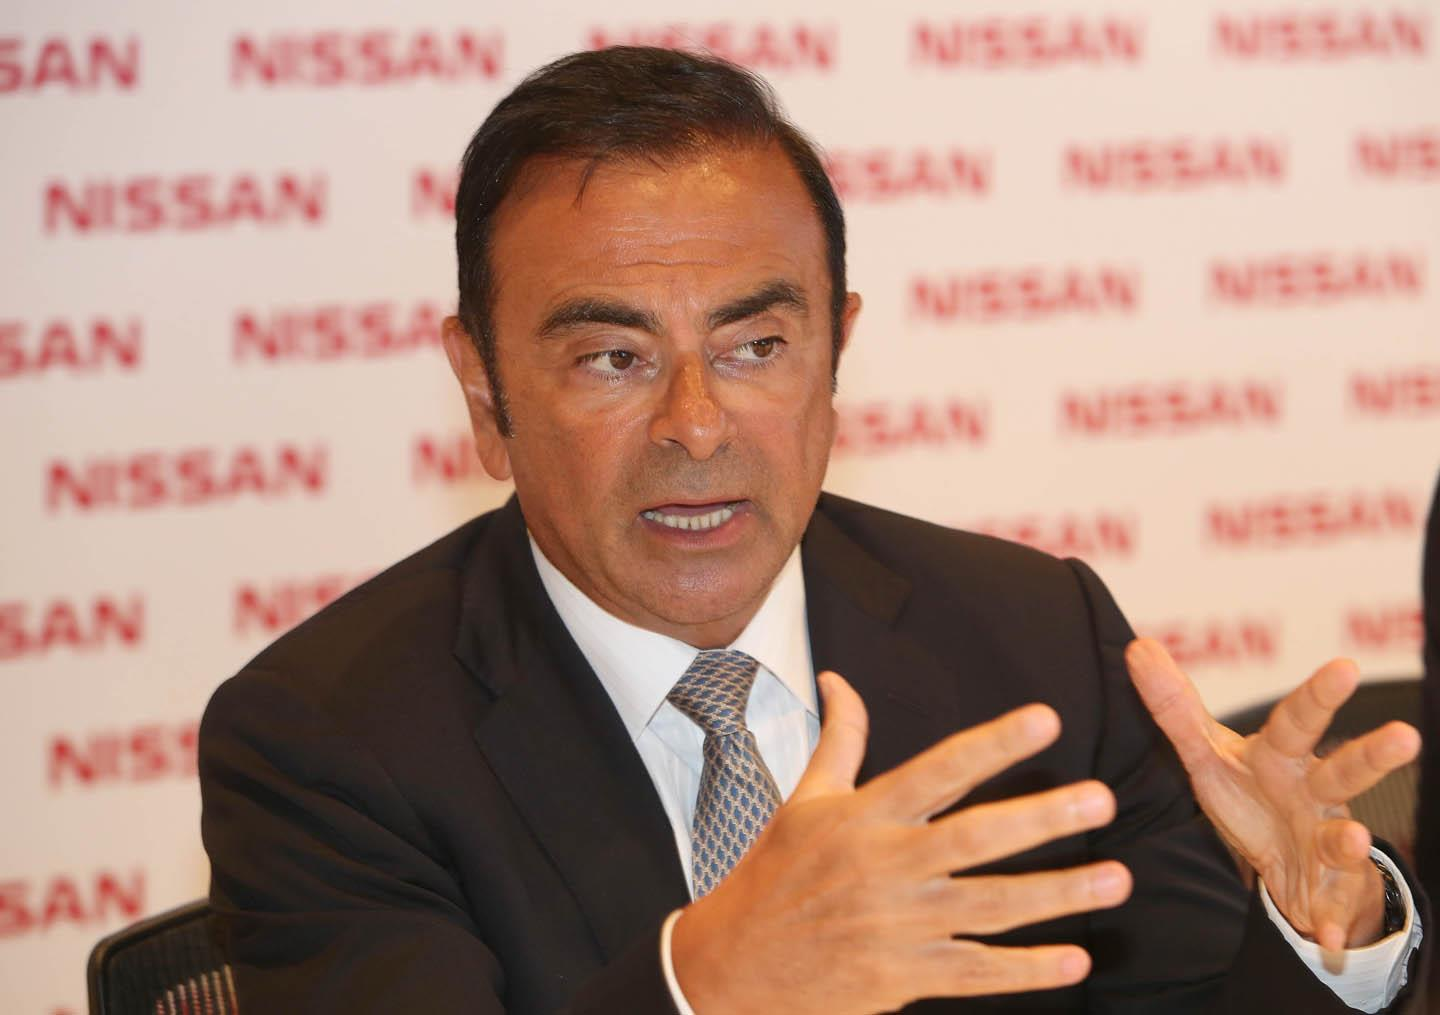 Interview with Carlos Ghosn, Chairman, Renault, Nissan and Mitsubishi